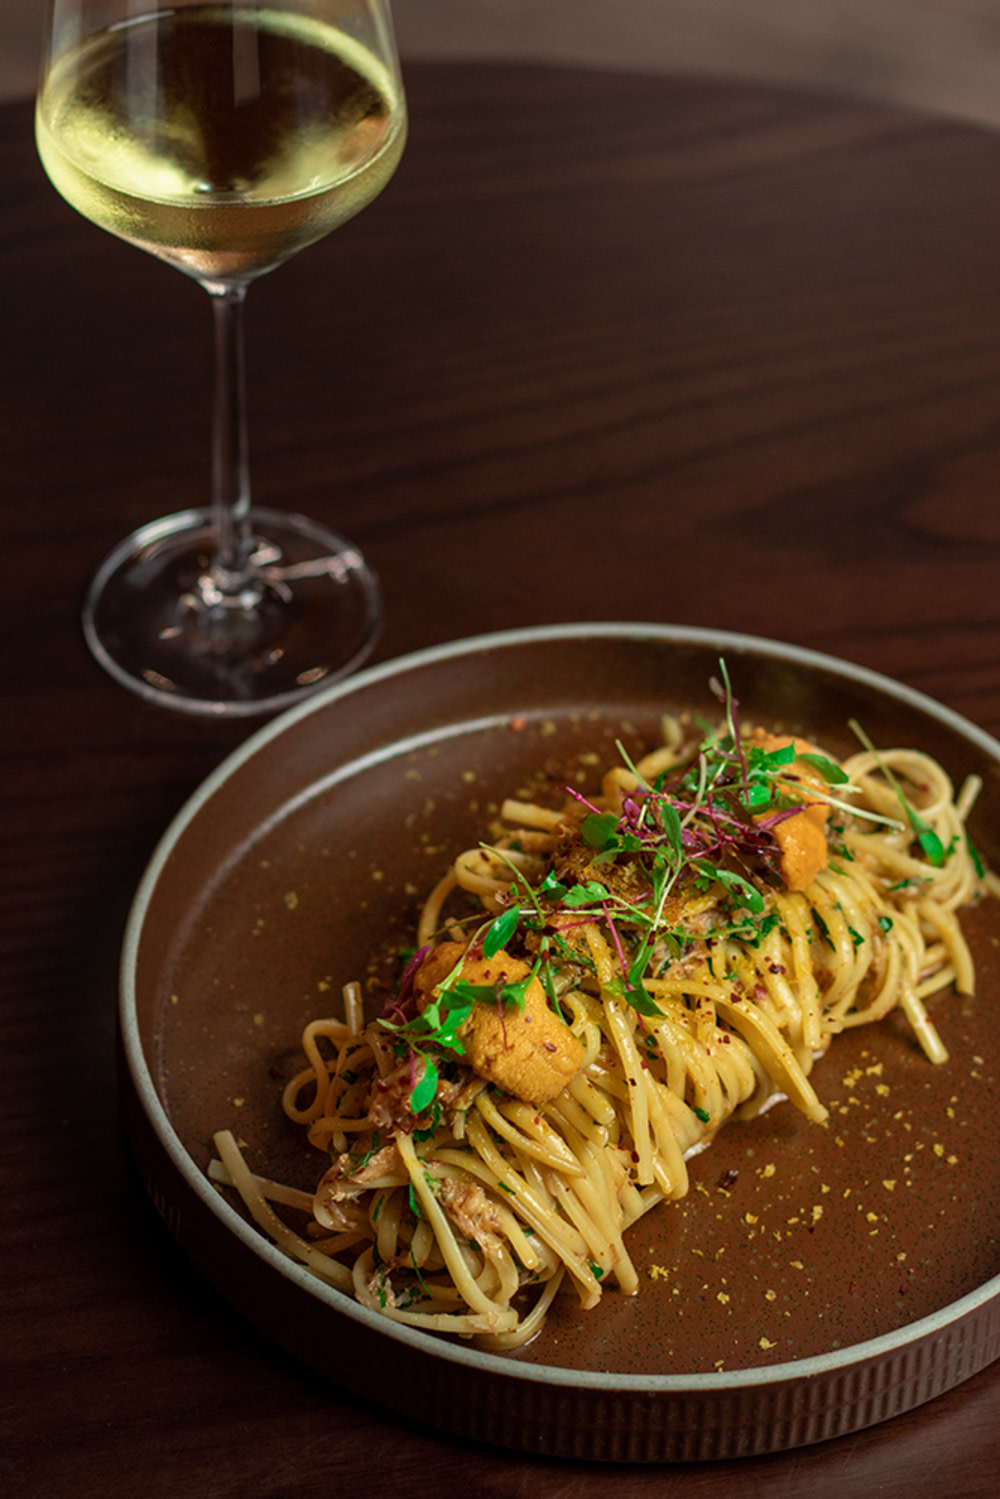 1) Spanner crab linguine from Mercedes me Store